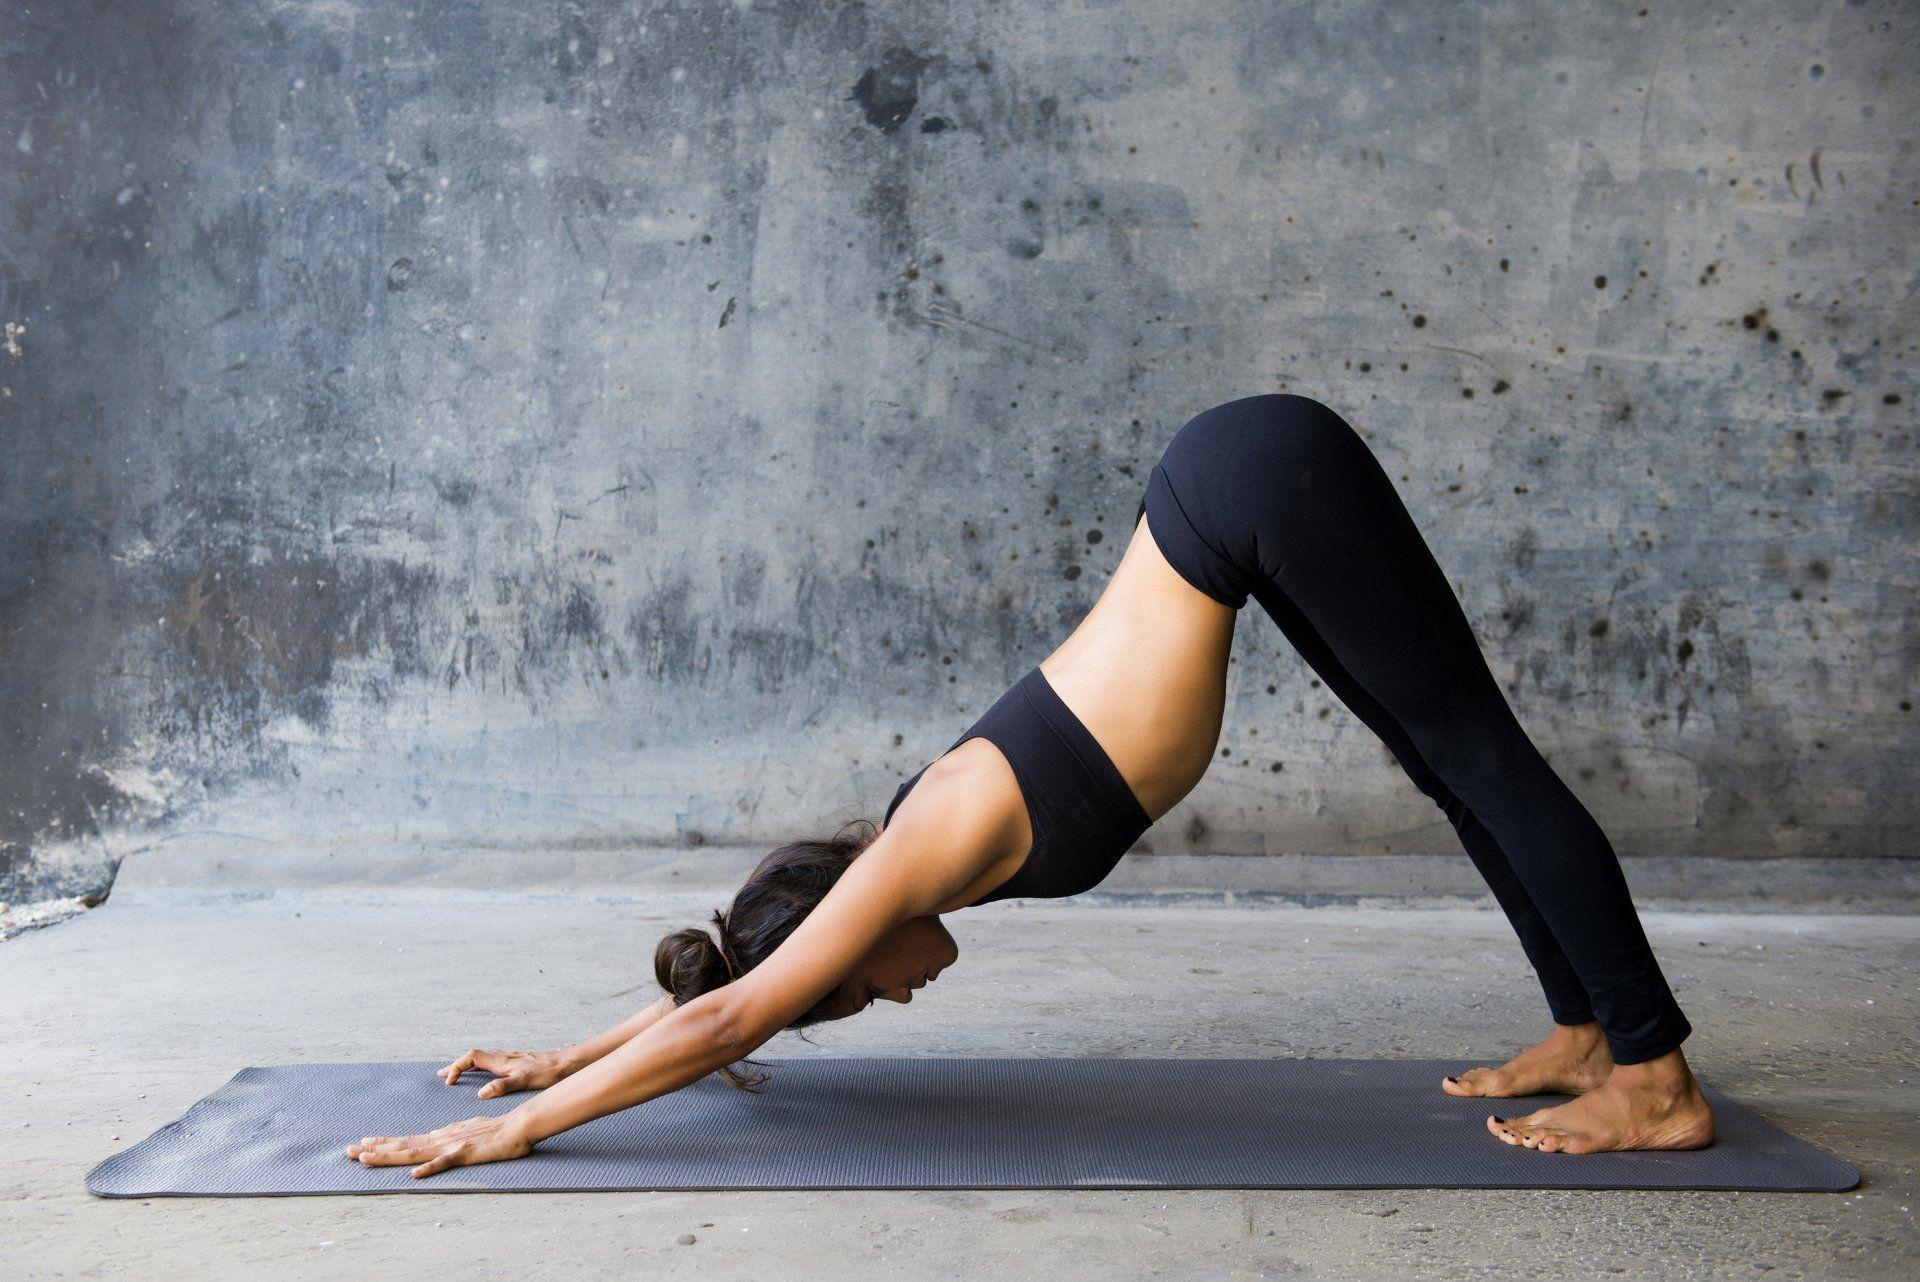 Female Yoga Wallpapers 61326 1920x1282 px